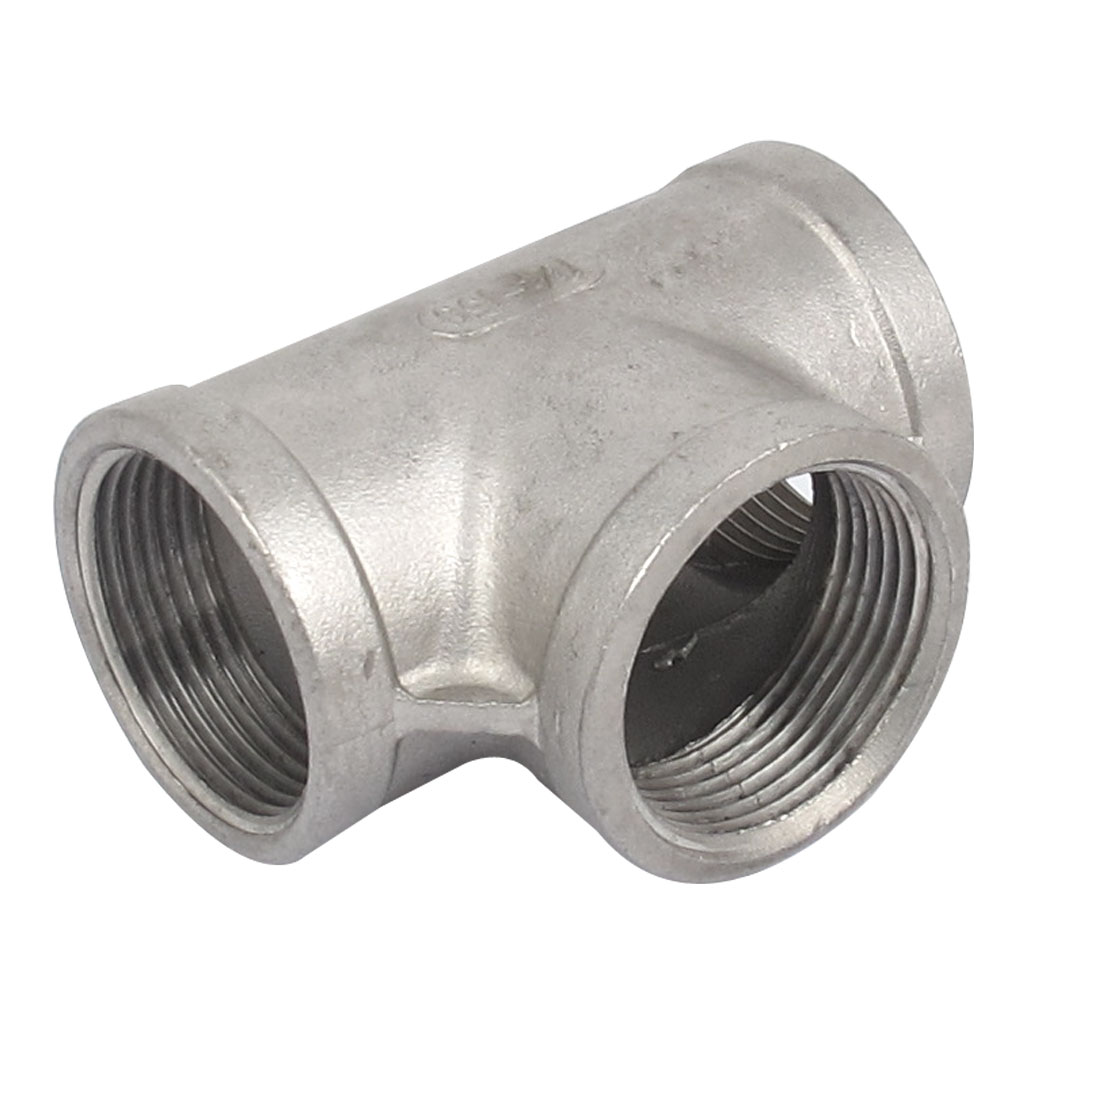 1 1/4 BSP 3 Way 304 Stainless Steel Pipe Fitting Threaded Biodiesel Gray